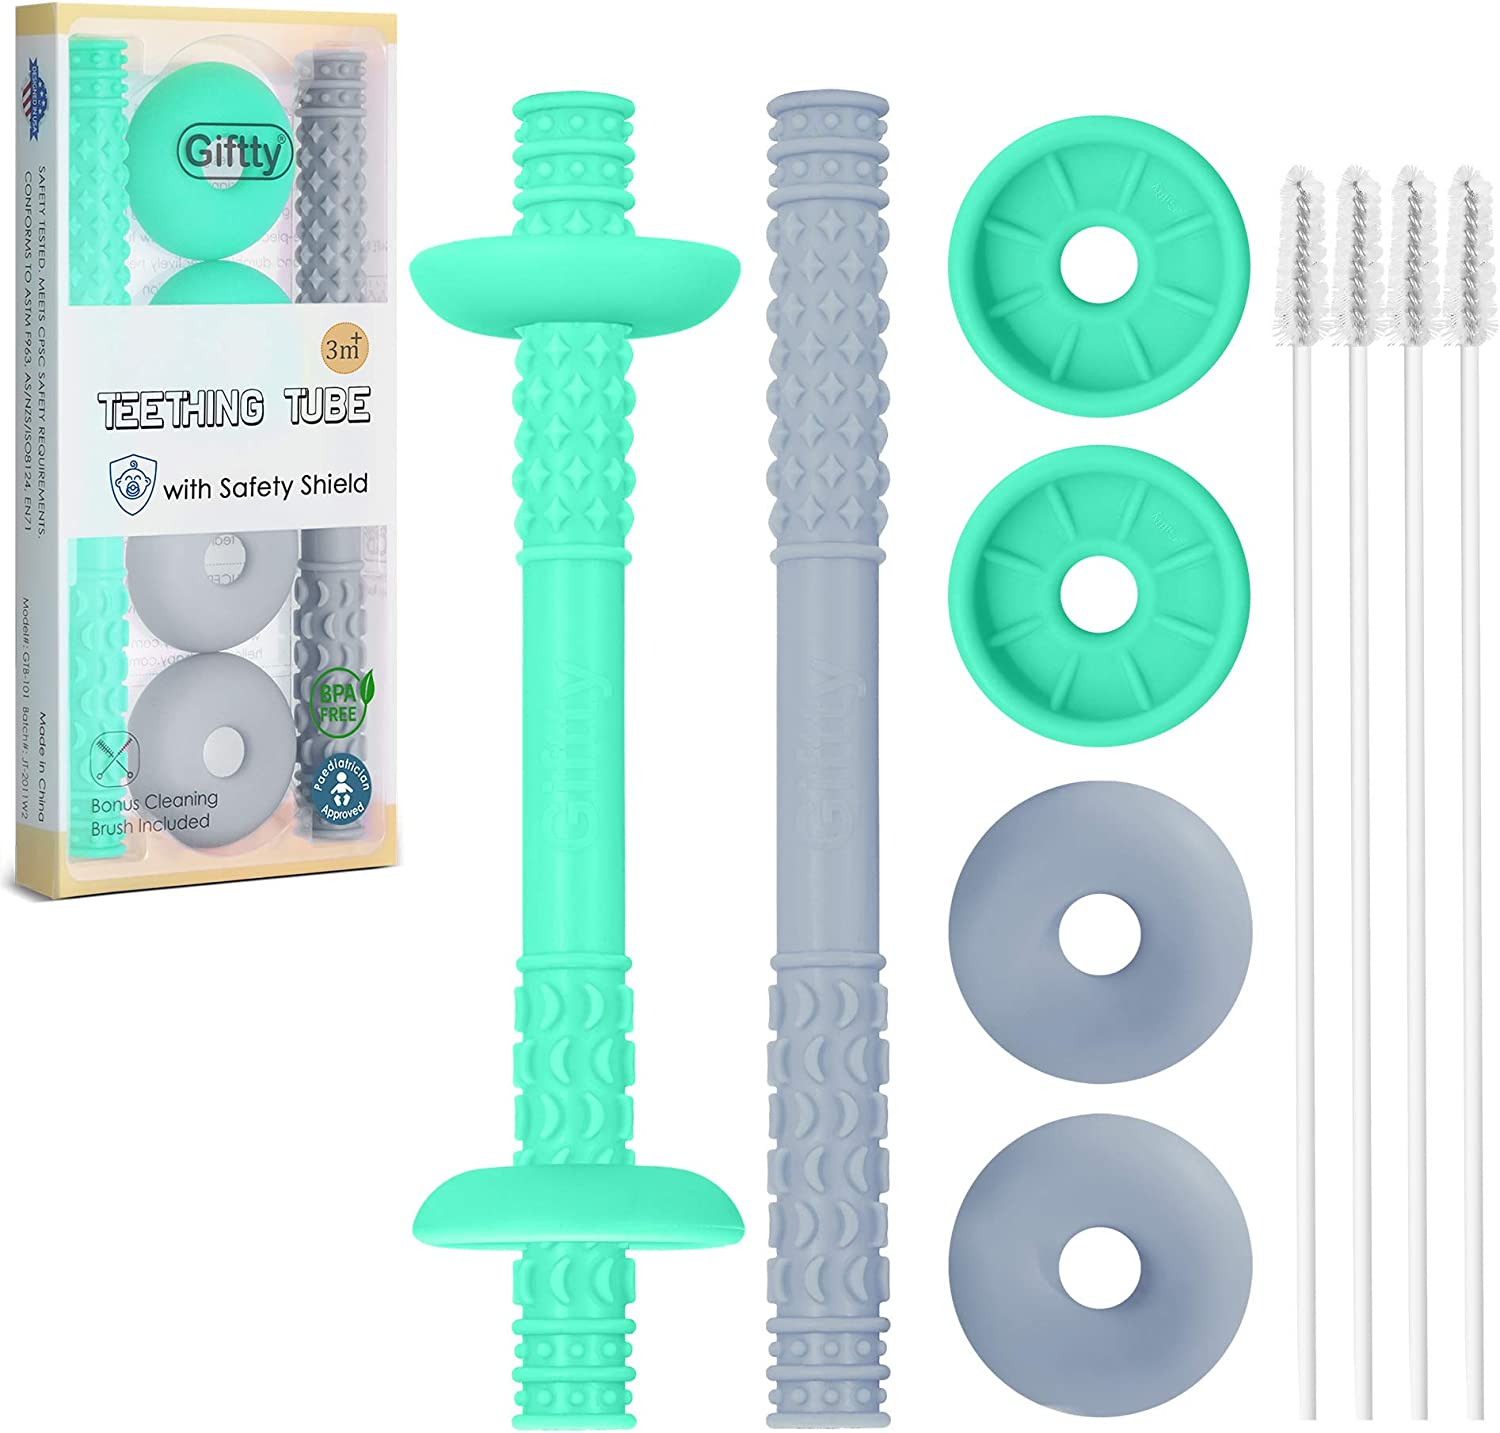 Teething Tube with Safety Shield Baby Hollow Teether Sensory Toys Gum Massager, Food-Grade Silicone for Infant 3-12 Months Boys Girls, 1 Pair with 4 Cleaning Brush Included (Emerald+Gray)